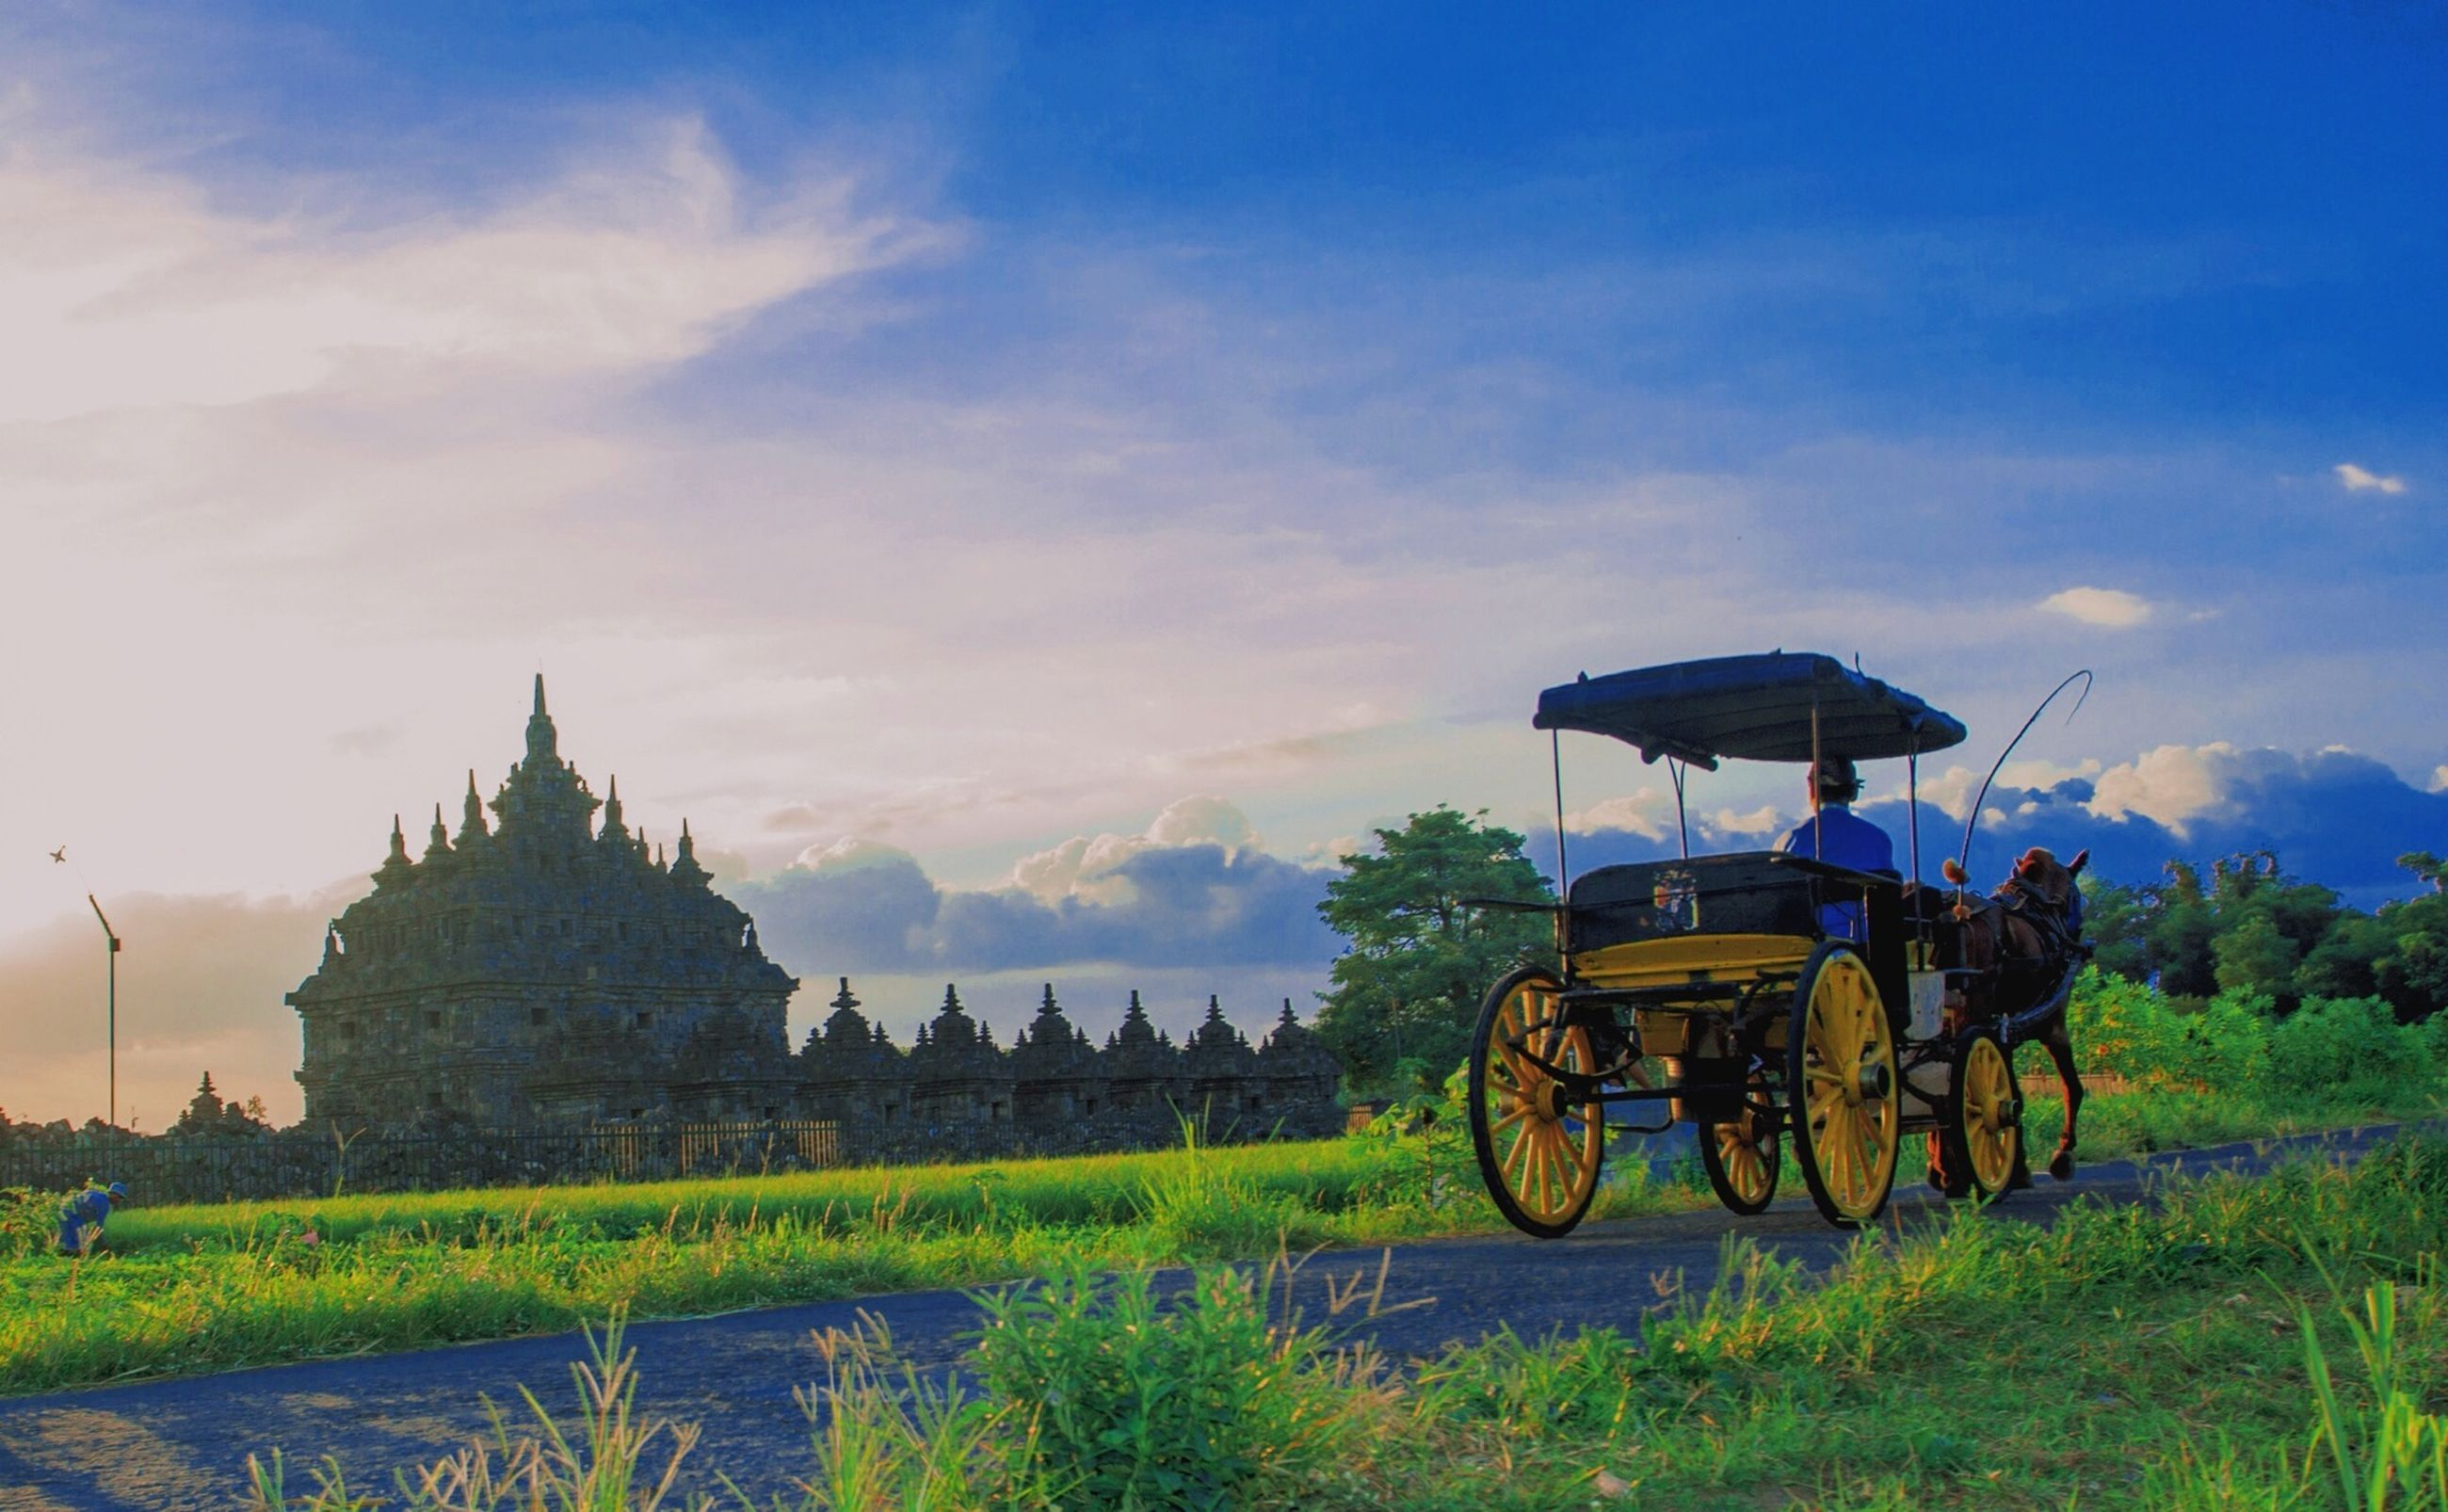 transportation, sky, mode of transport, land vehicle, bicycle, grass, cloud - sky, landscape, travel, architecture, tranquility, field, cloud, building exterior, built structure, nature, scenics, tranquil scene, stationary, plant